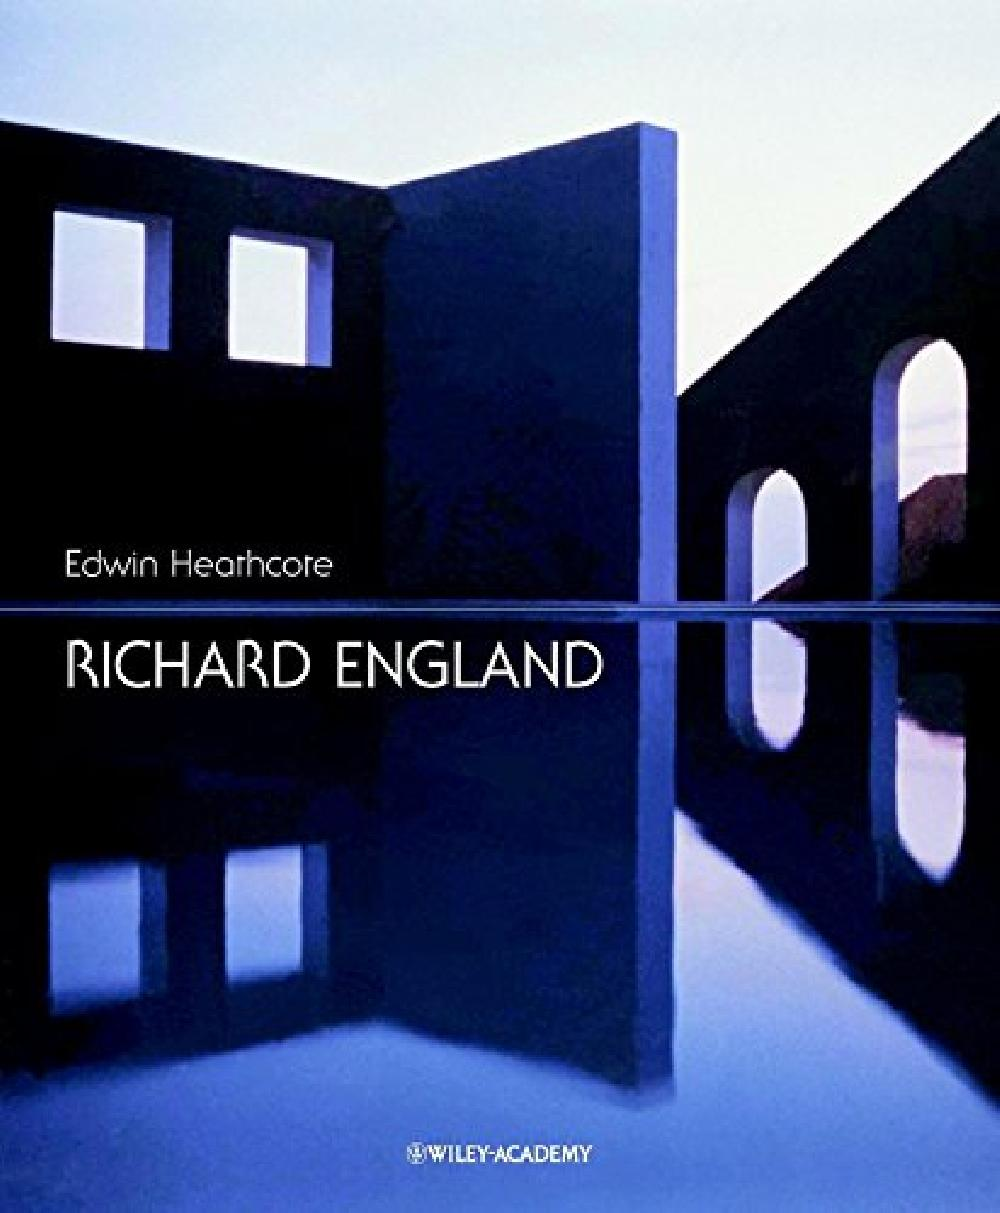 Richard England